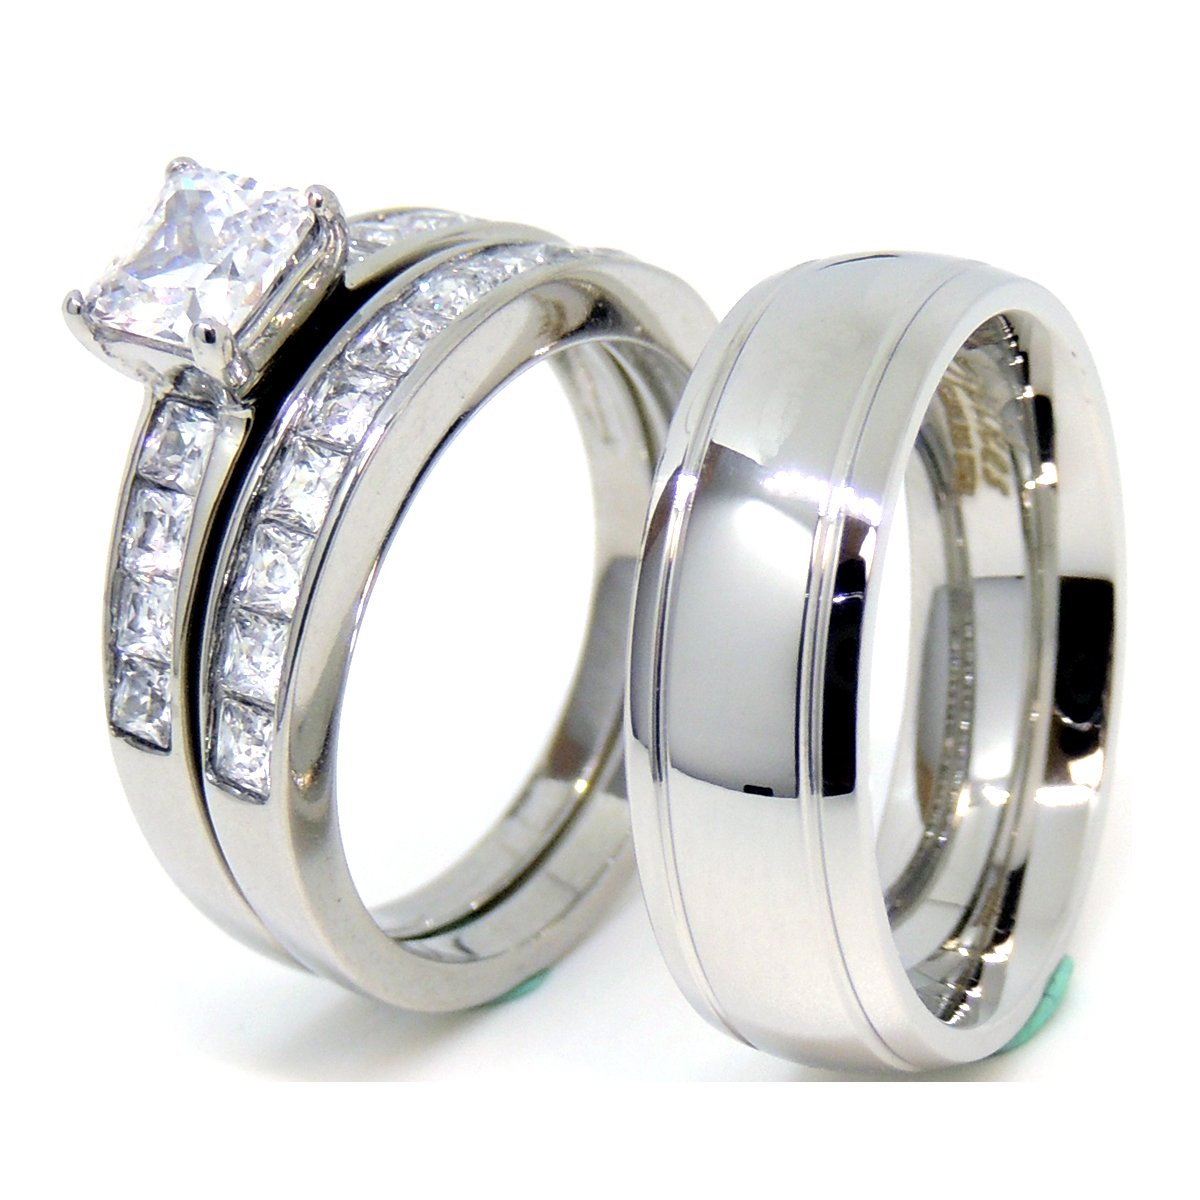 Lanyjewelry His and Hers 情侣戒指套装 女式 公主 CZ 婚戒套装 男式圆顶槽边戒指